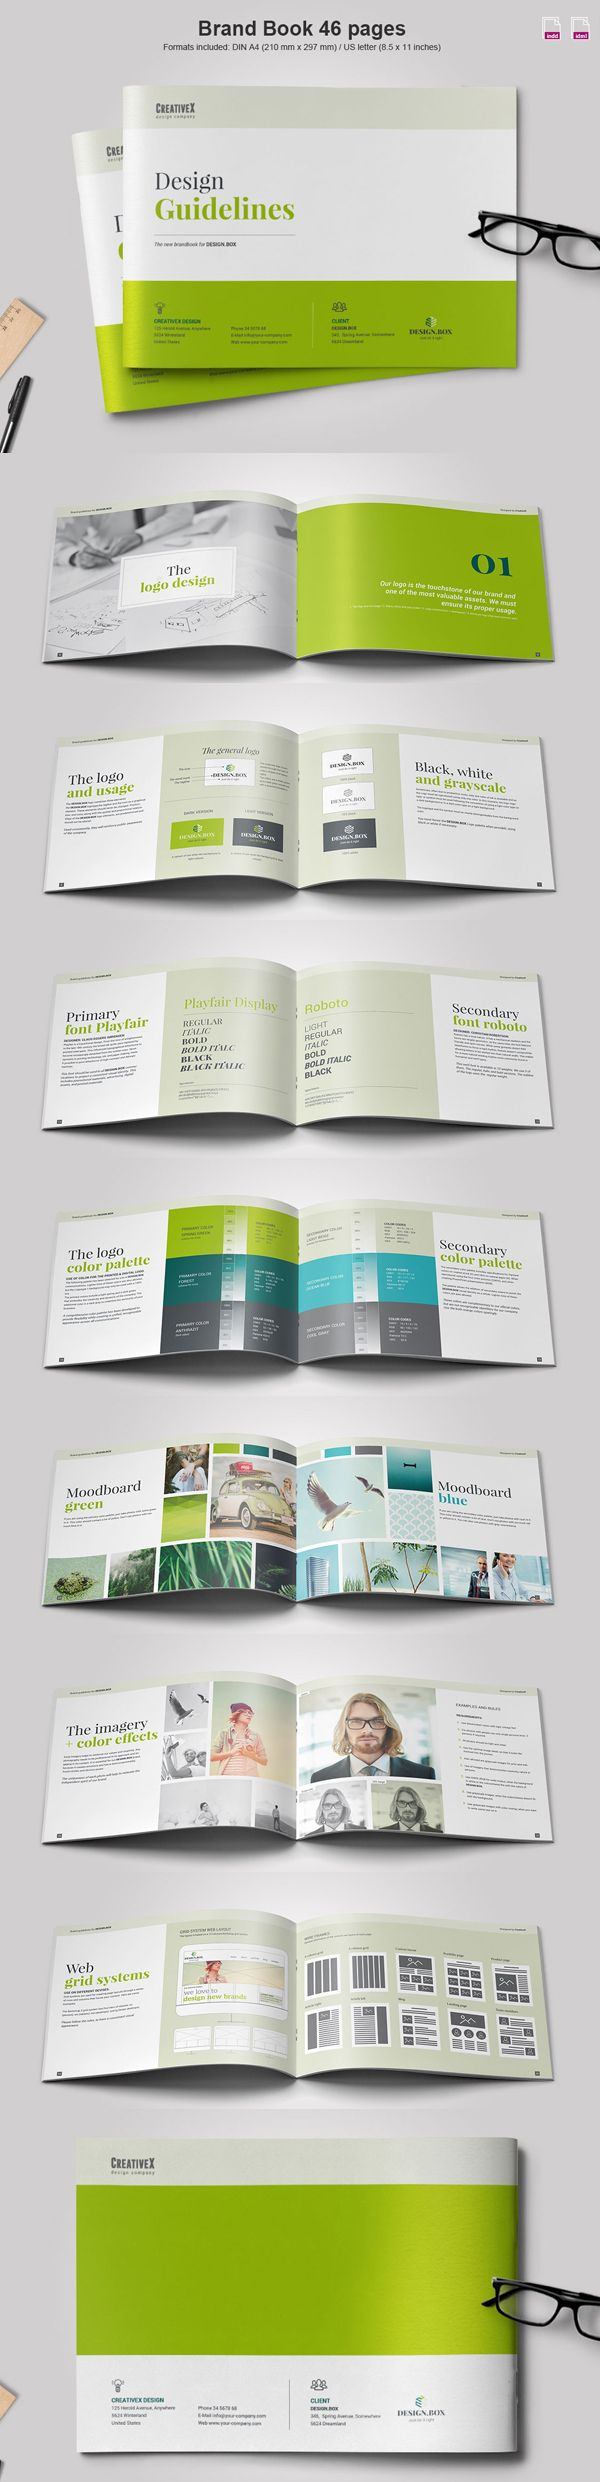 Landscape Brand Book Brochure Template                                                                                                                                                                                 More                                                                                                                                                                                 More